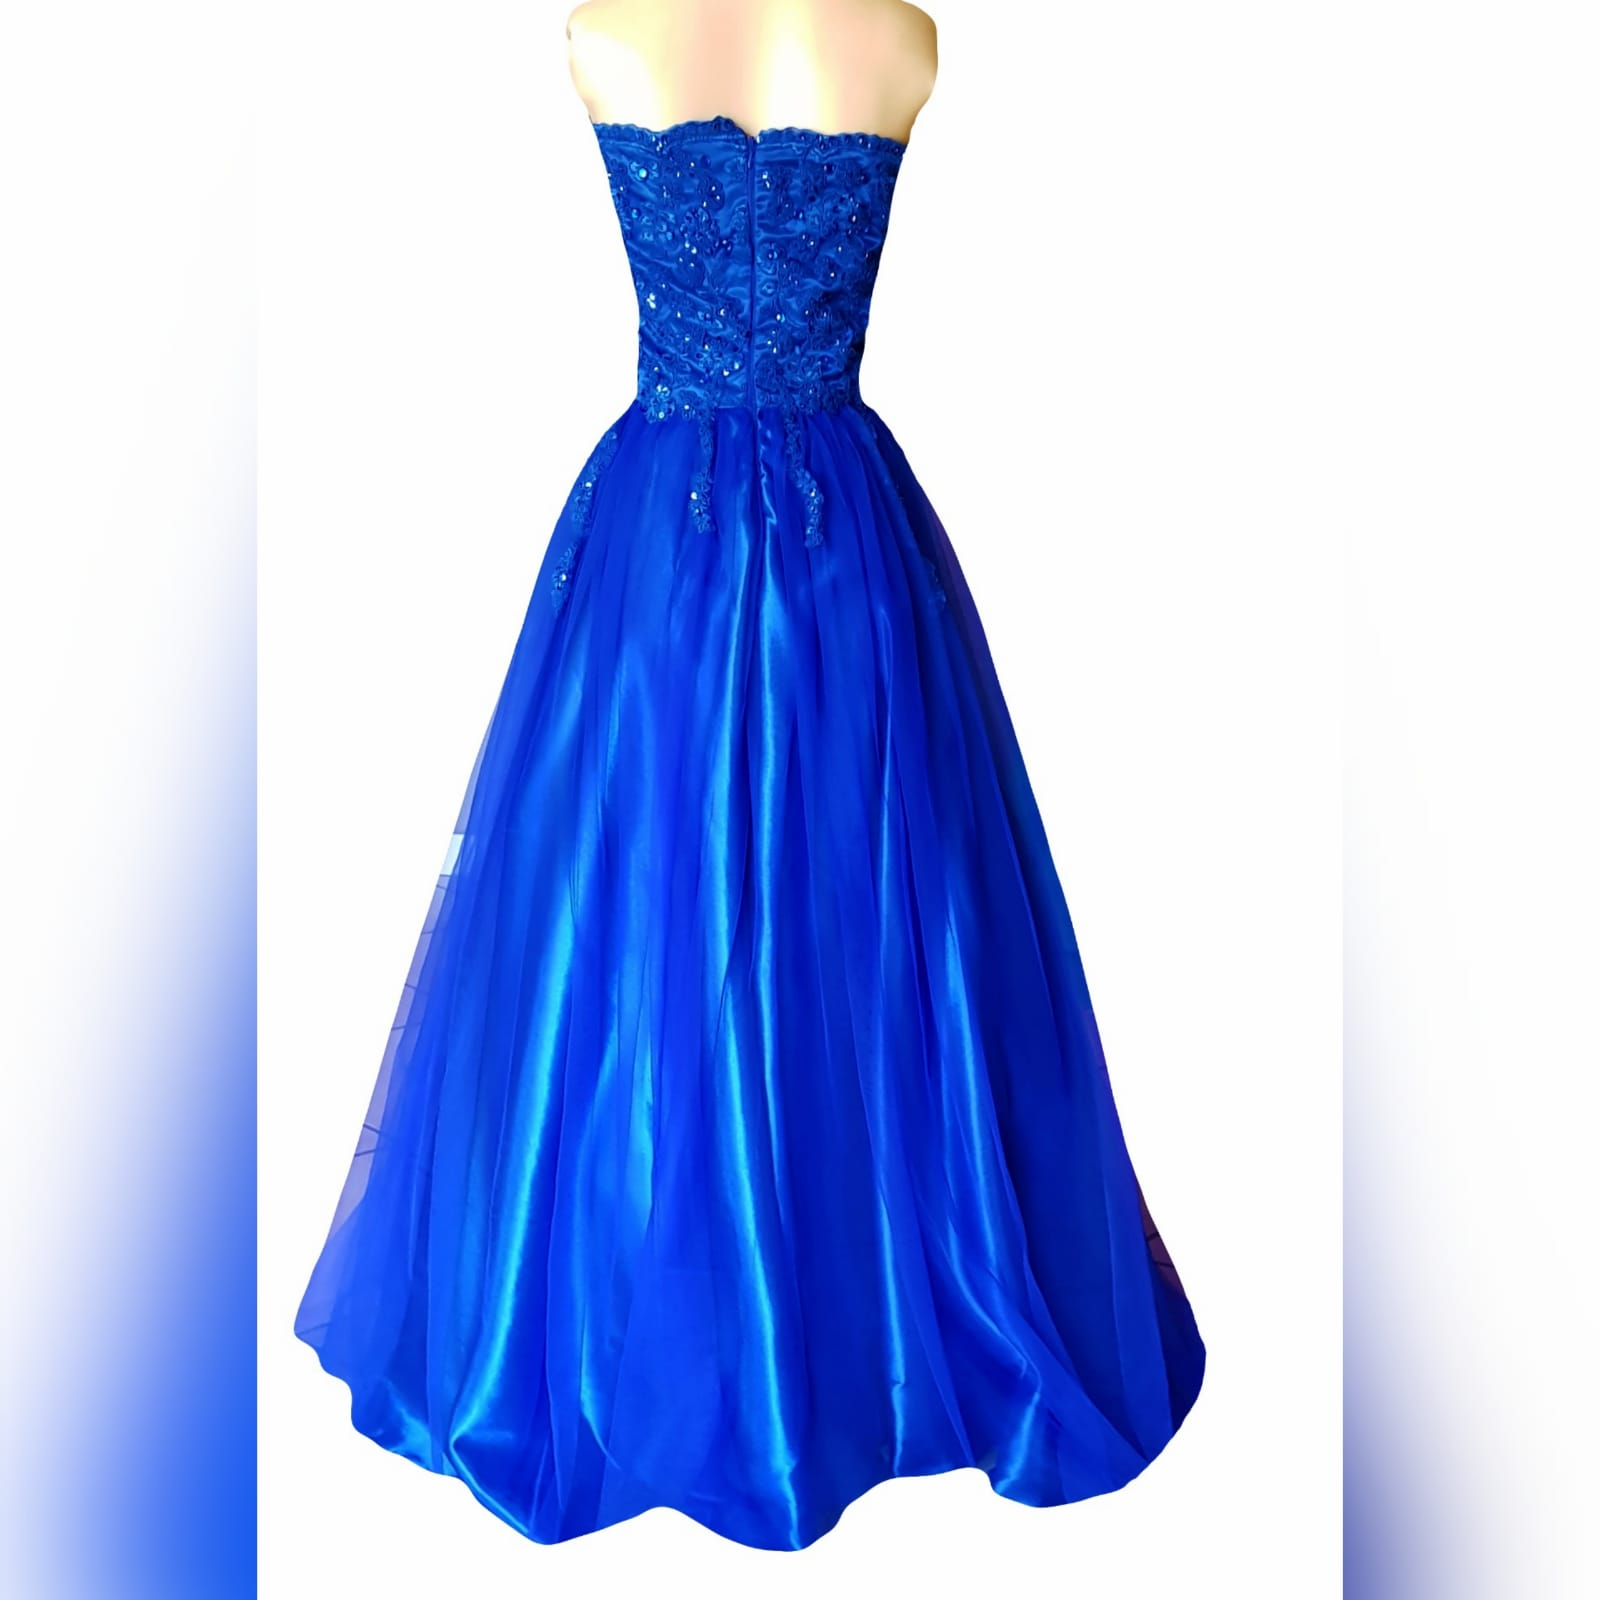 Royal blue boobtube tulle prom dress 12 royal blue boobtube tulle prom dress. Bodice with a sweetheart neckline and detailed with beaded lace falling onto the tulle skirt.